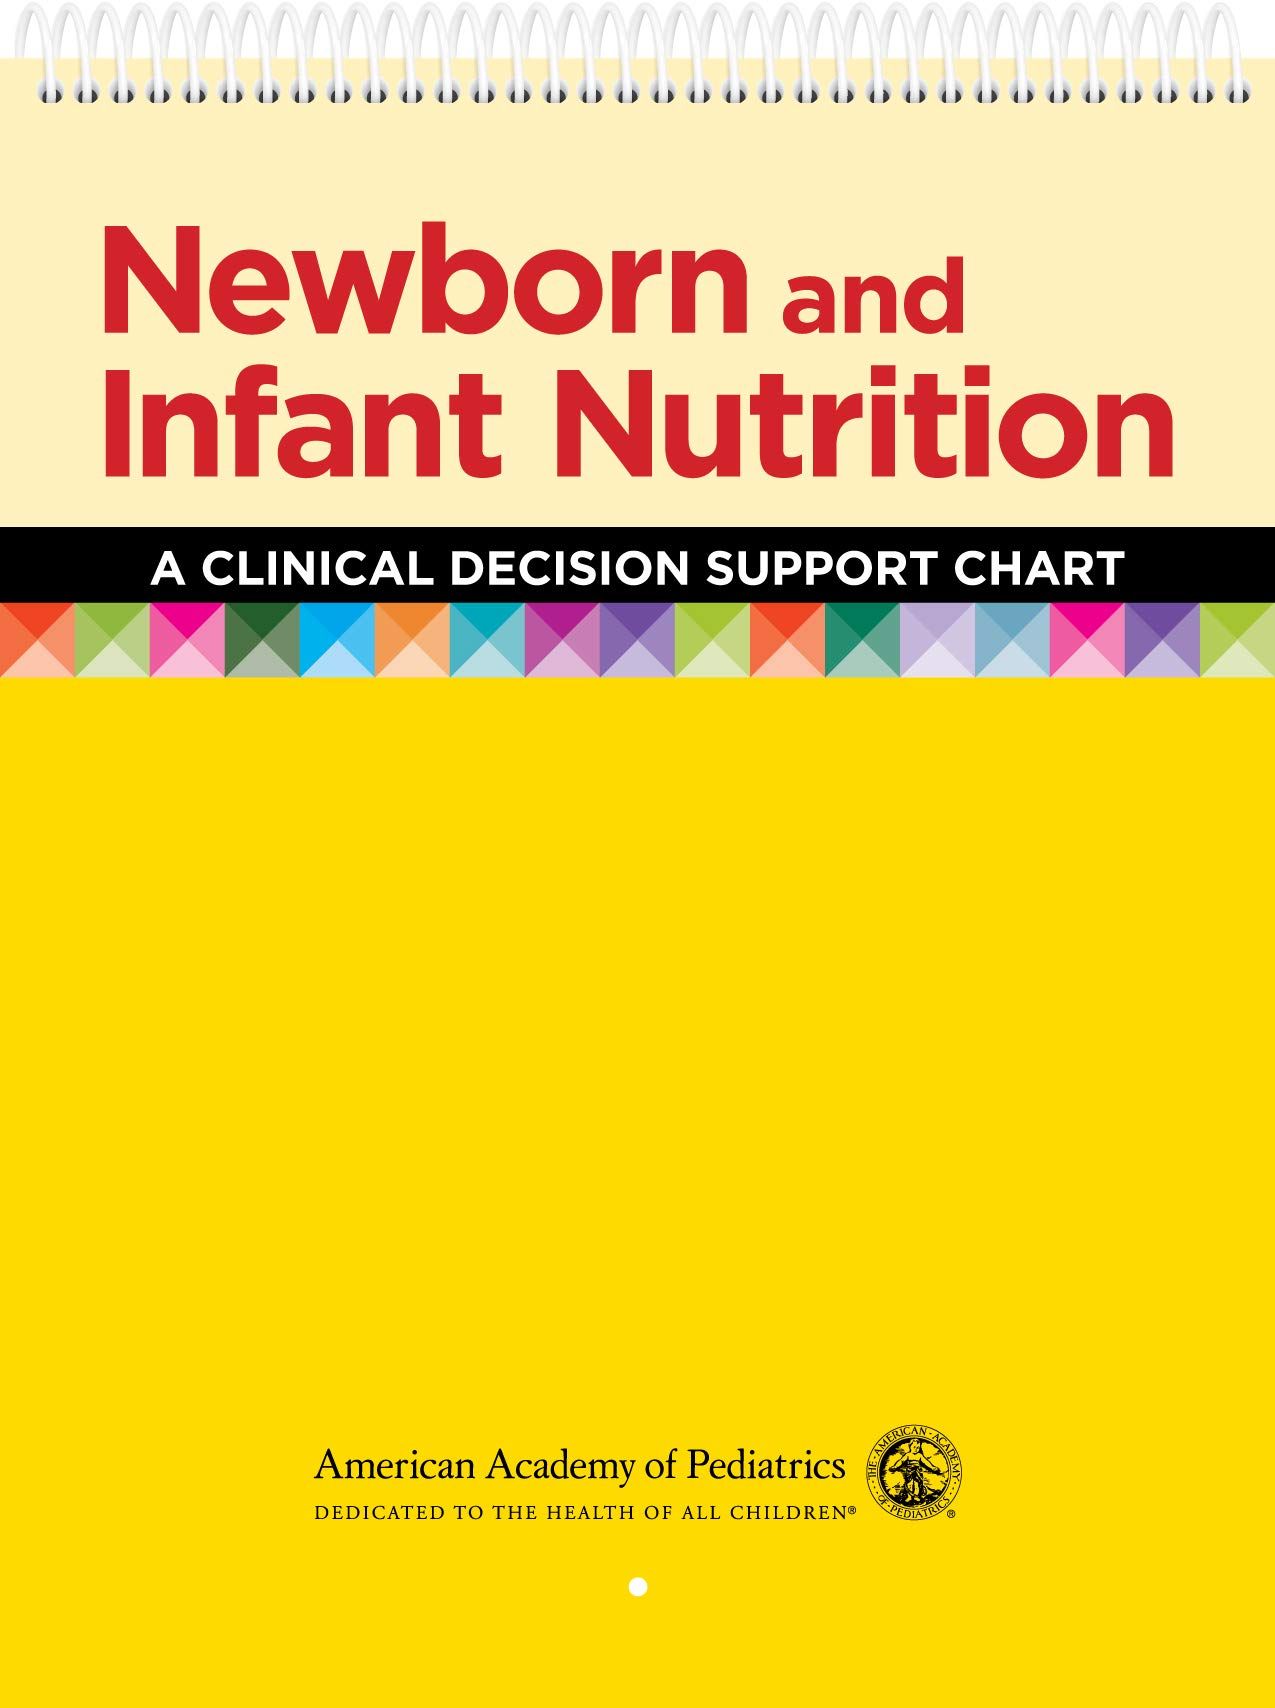 Newborn and Infant Nutrition